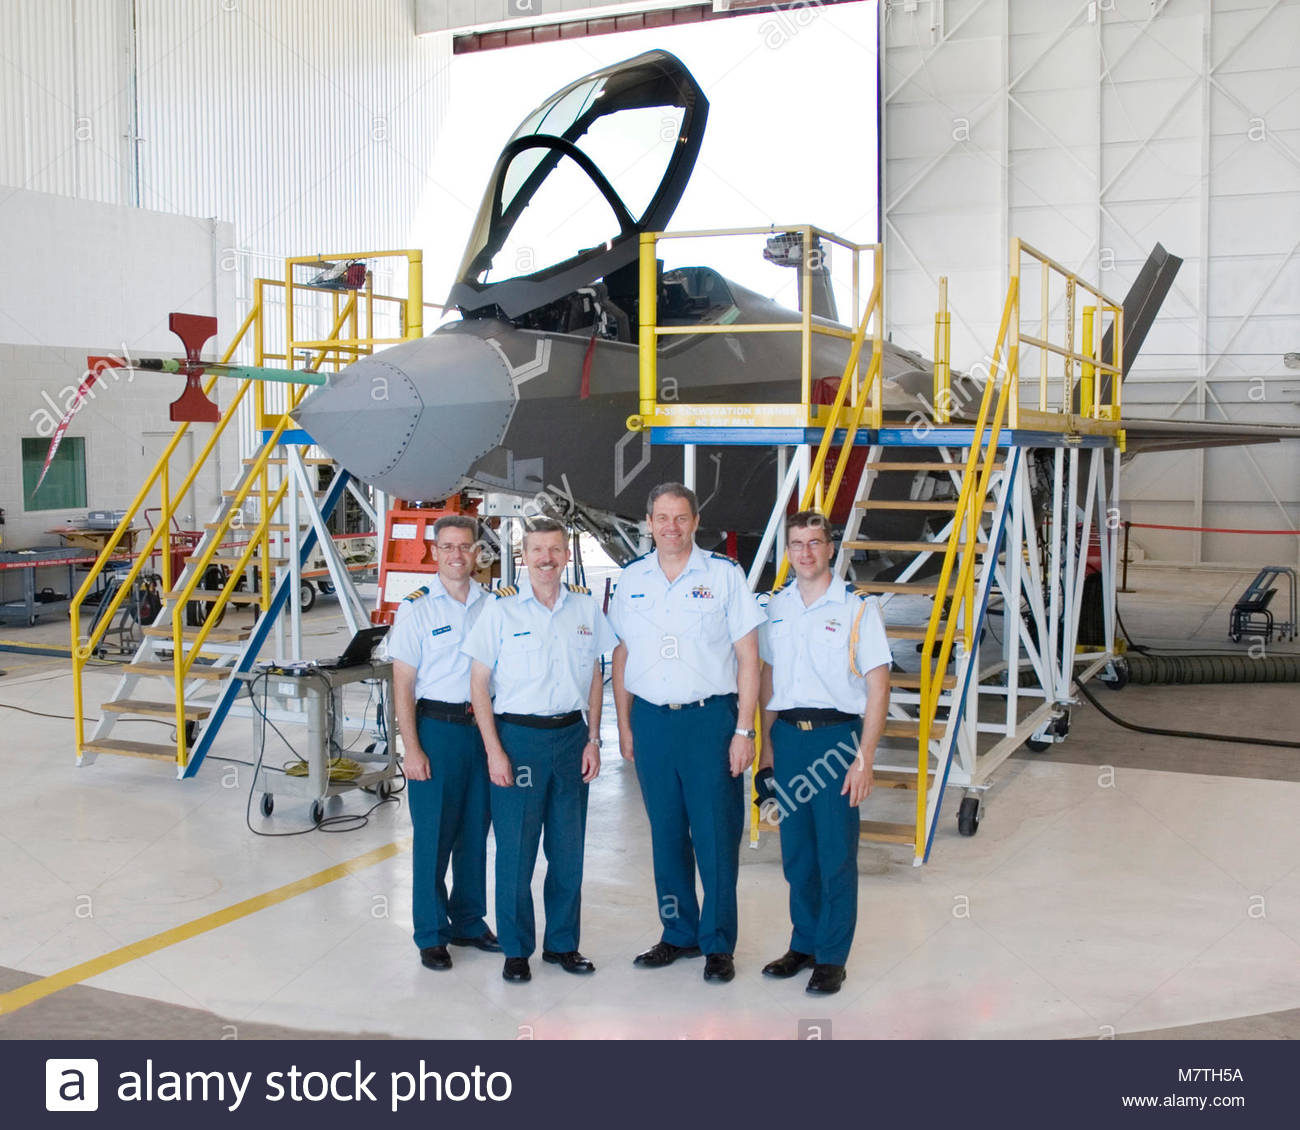 CAS Visit. Lt-General Steve Lucas, Chief Air Staff, and Colonel Dave C. Burt, Director Air Requirement, pose in - Stock Image